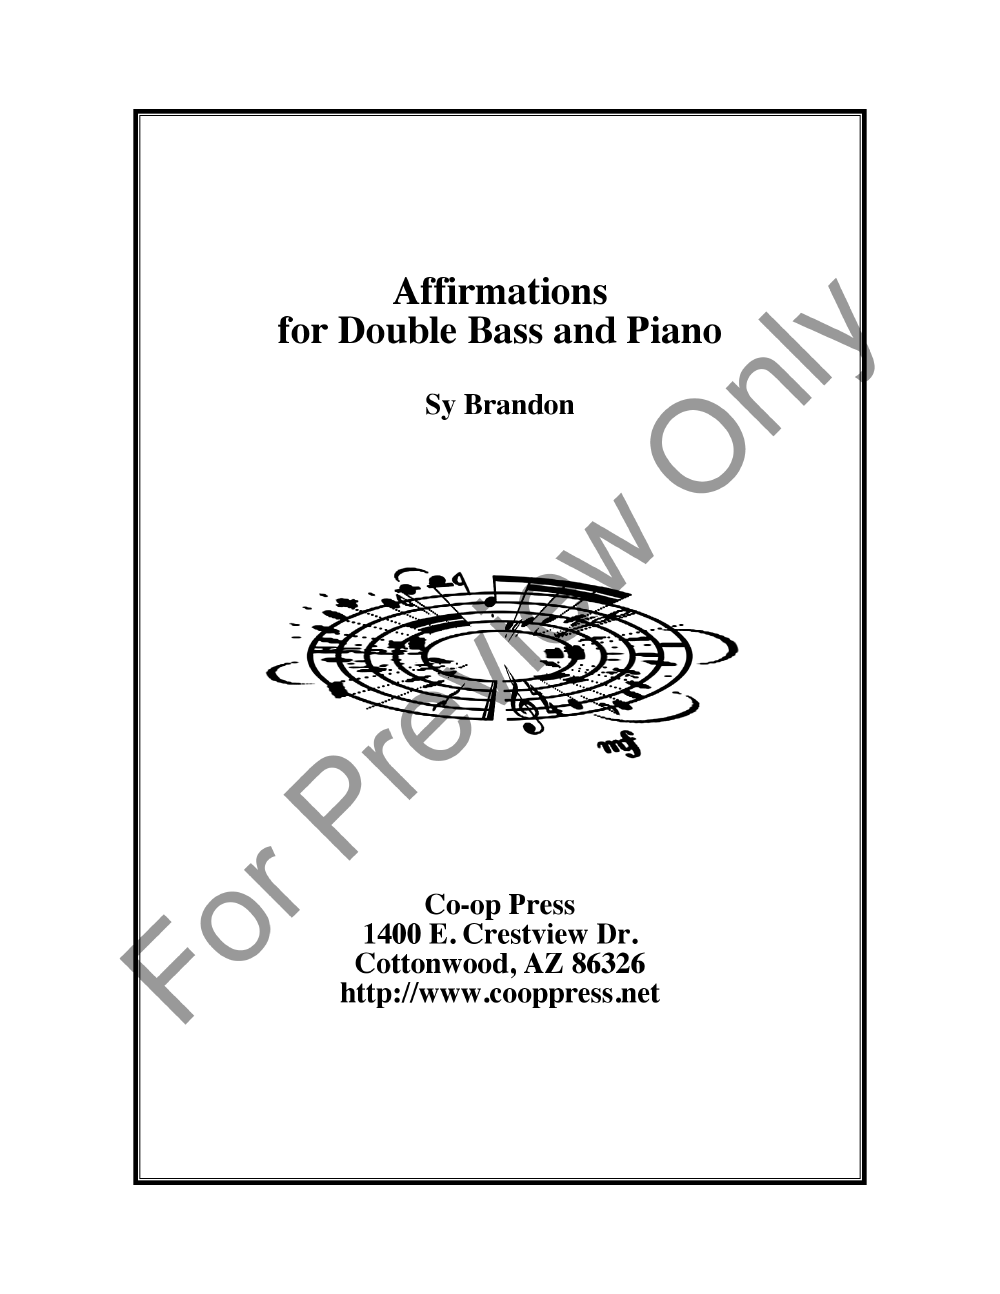 Affirmations for Double Bass and Piano Thumbnail